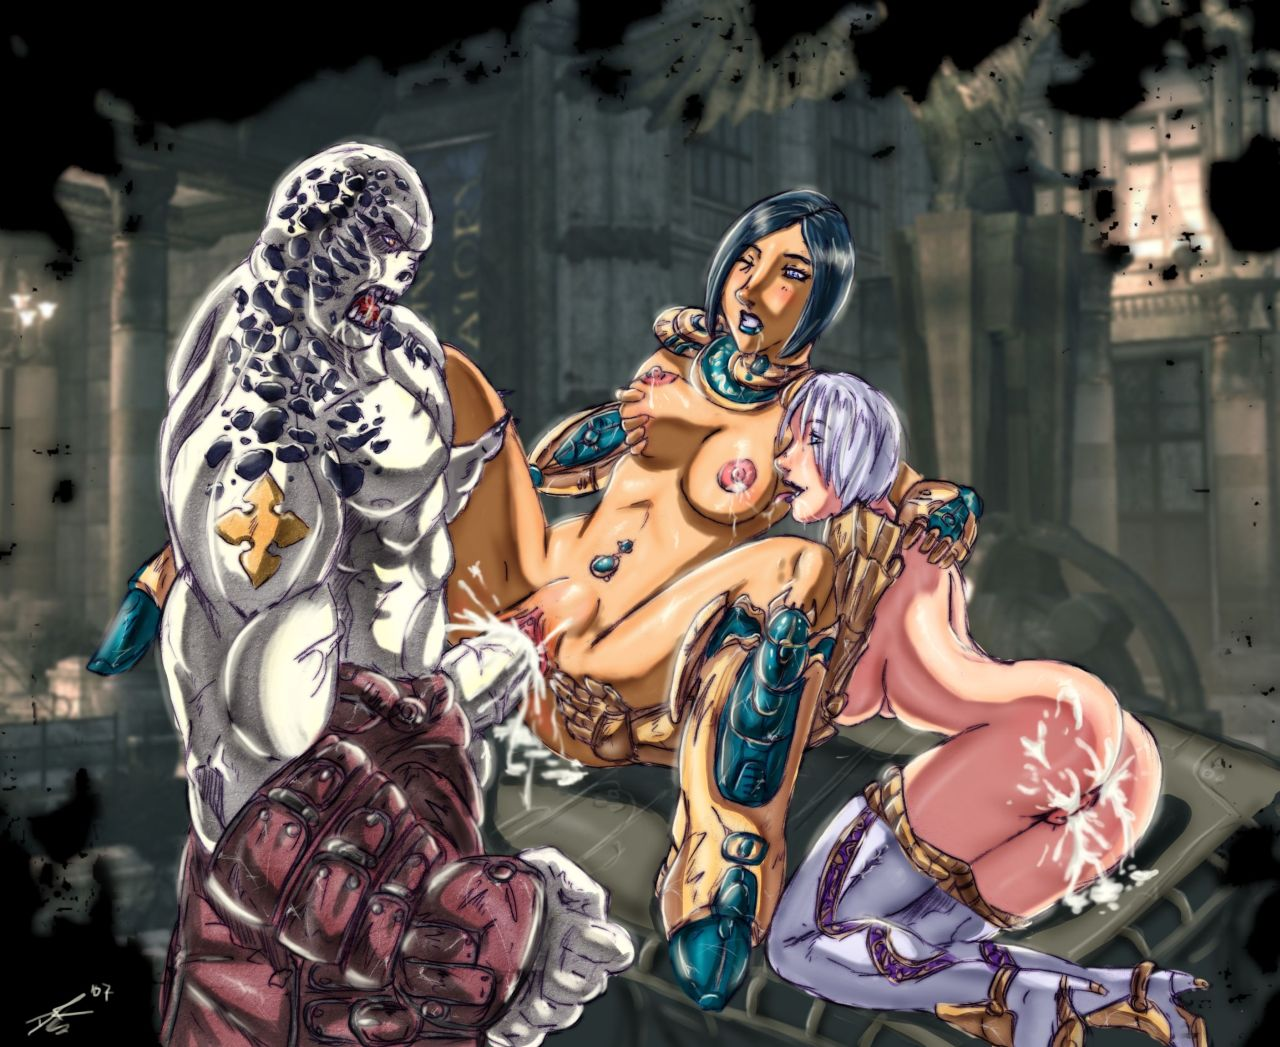 naked war gears of sam Anime girls with big butts